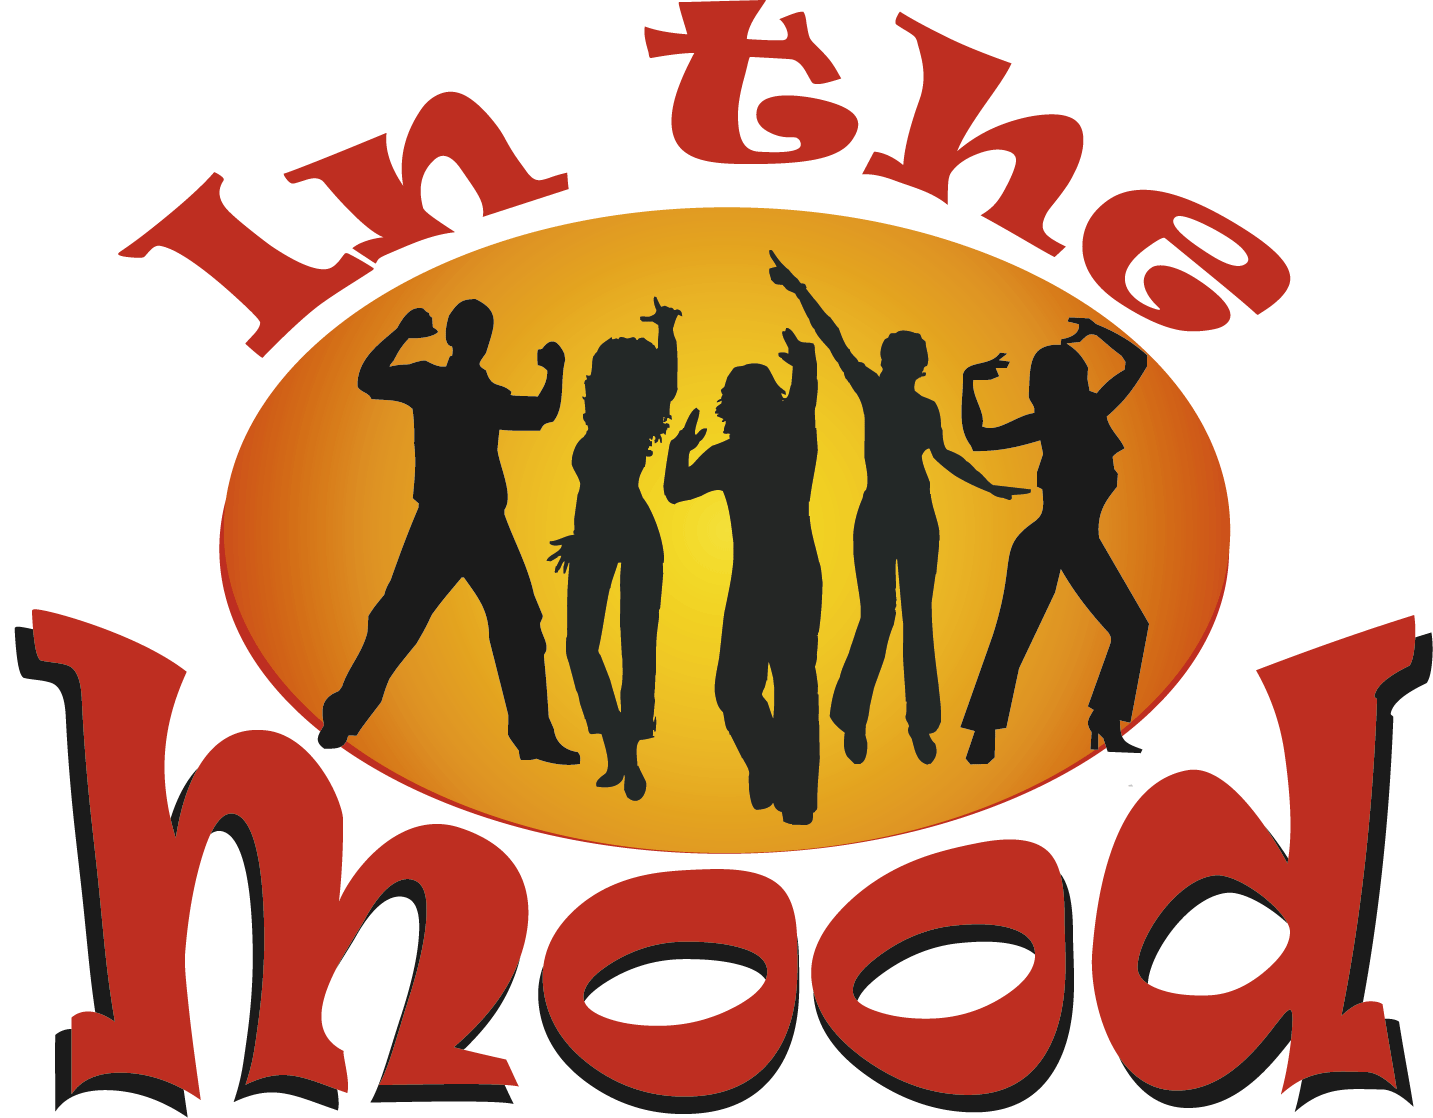 In the mood logo